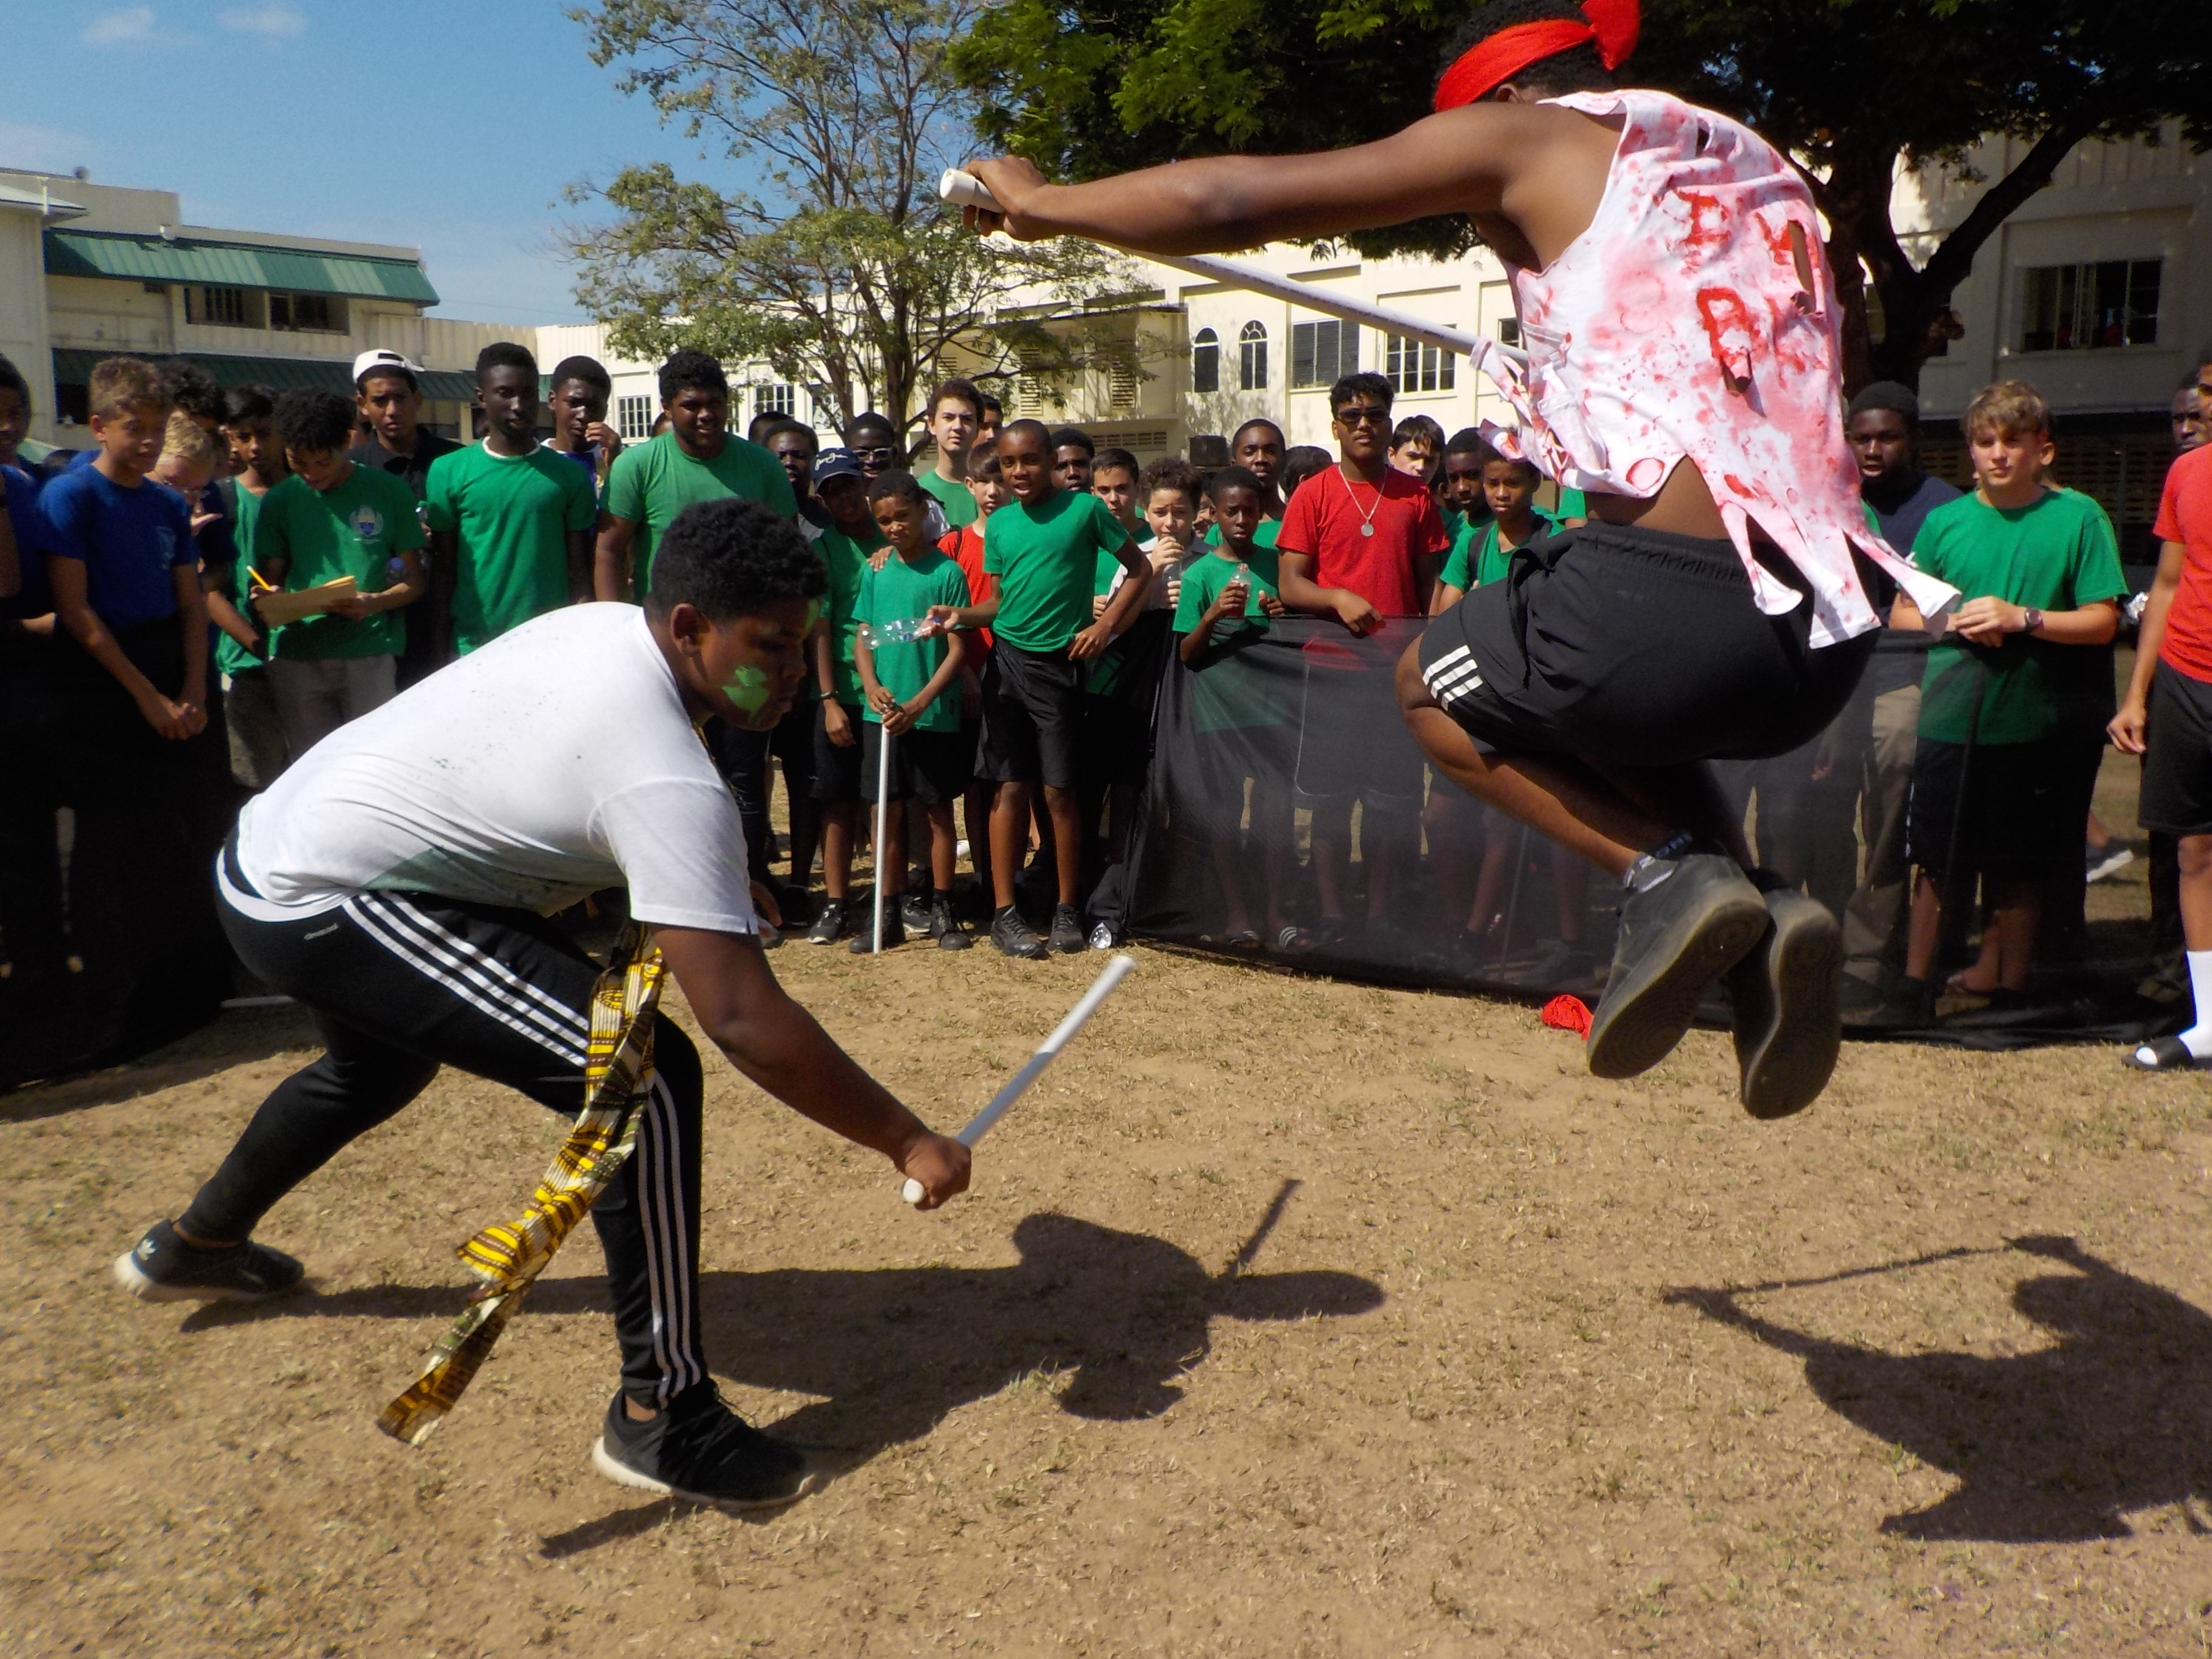 Francois Illas New Tradition: For Trinidad Carnival, Catholic Students Learn African